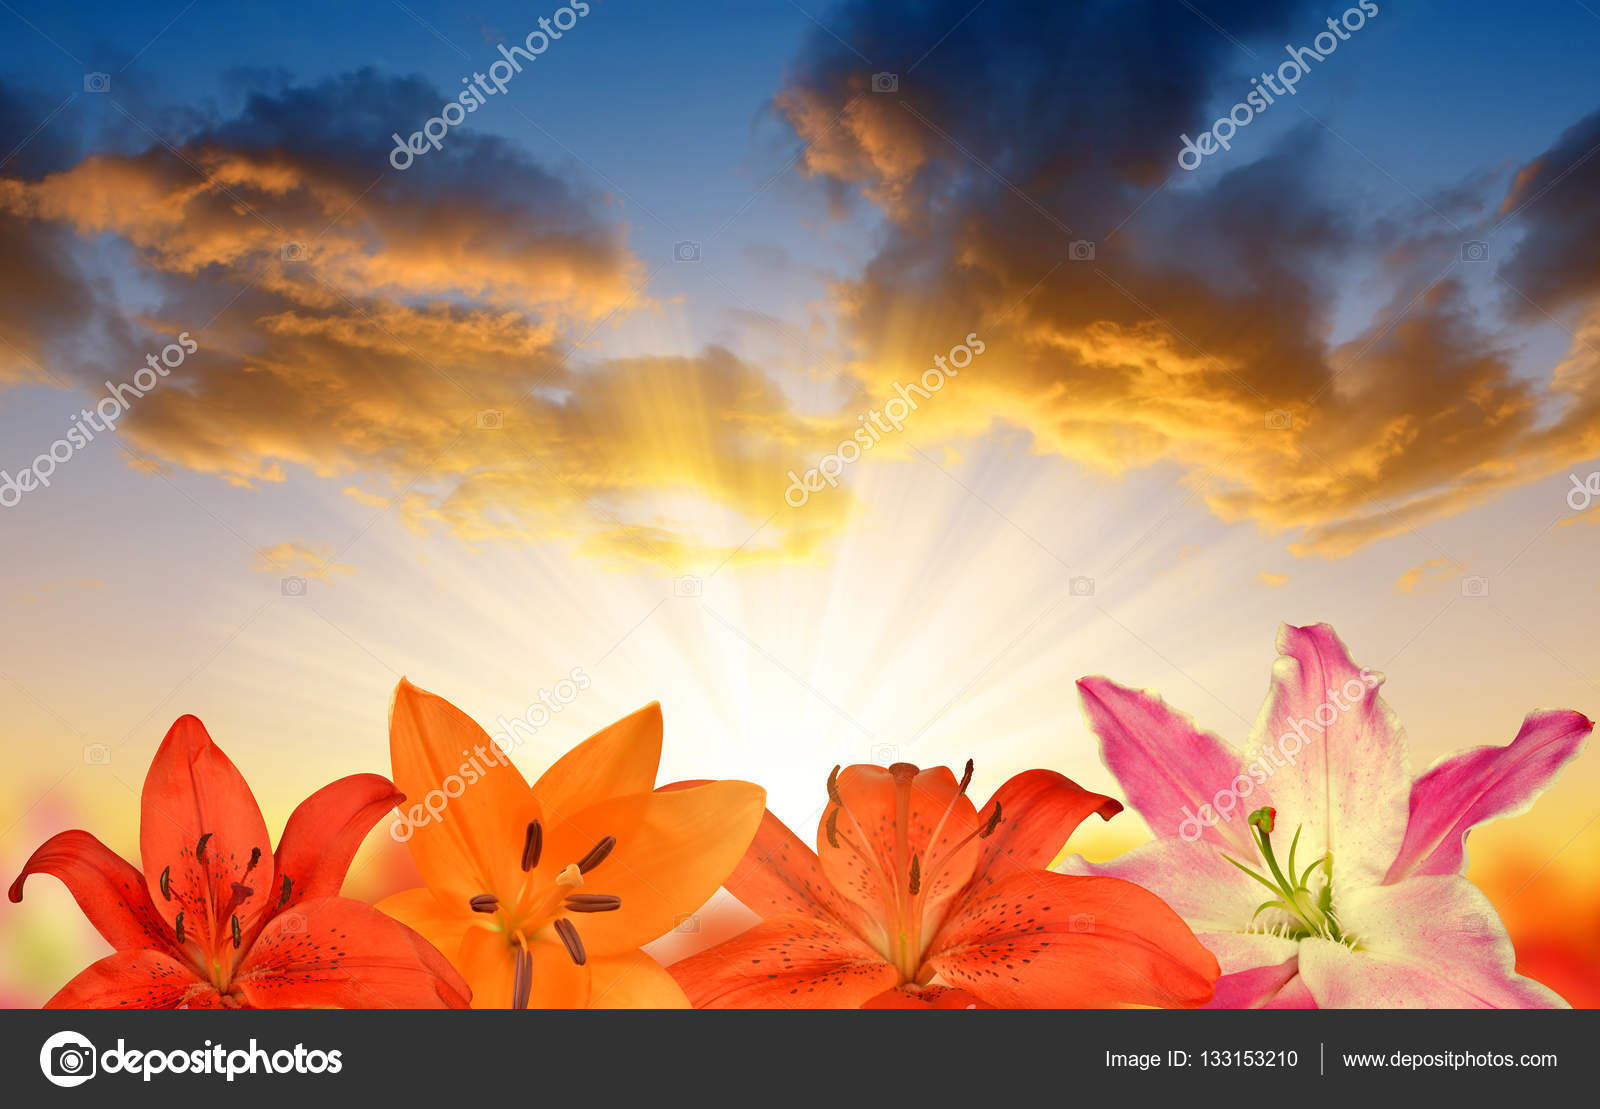 Lily flowers at sunset stock photo vencav 133153210 lily flowers at sunset stock photo izmirmasajfo